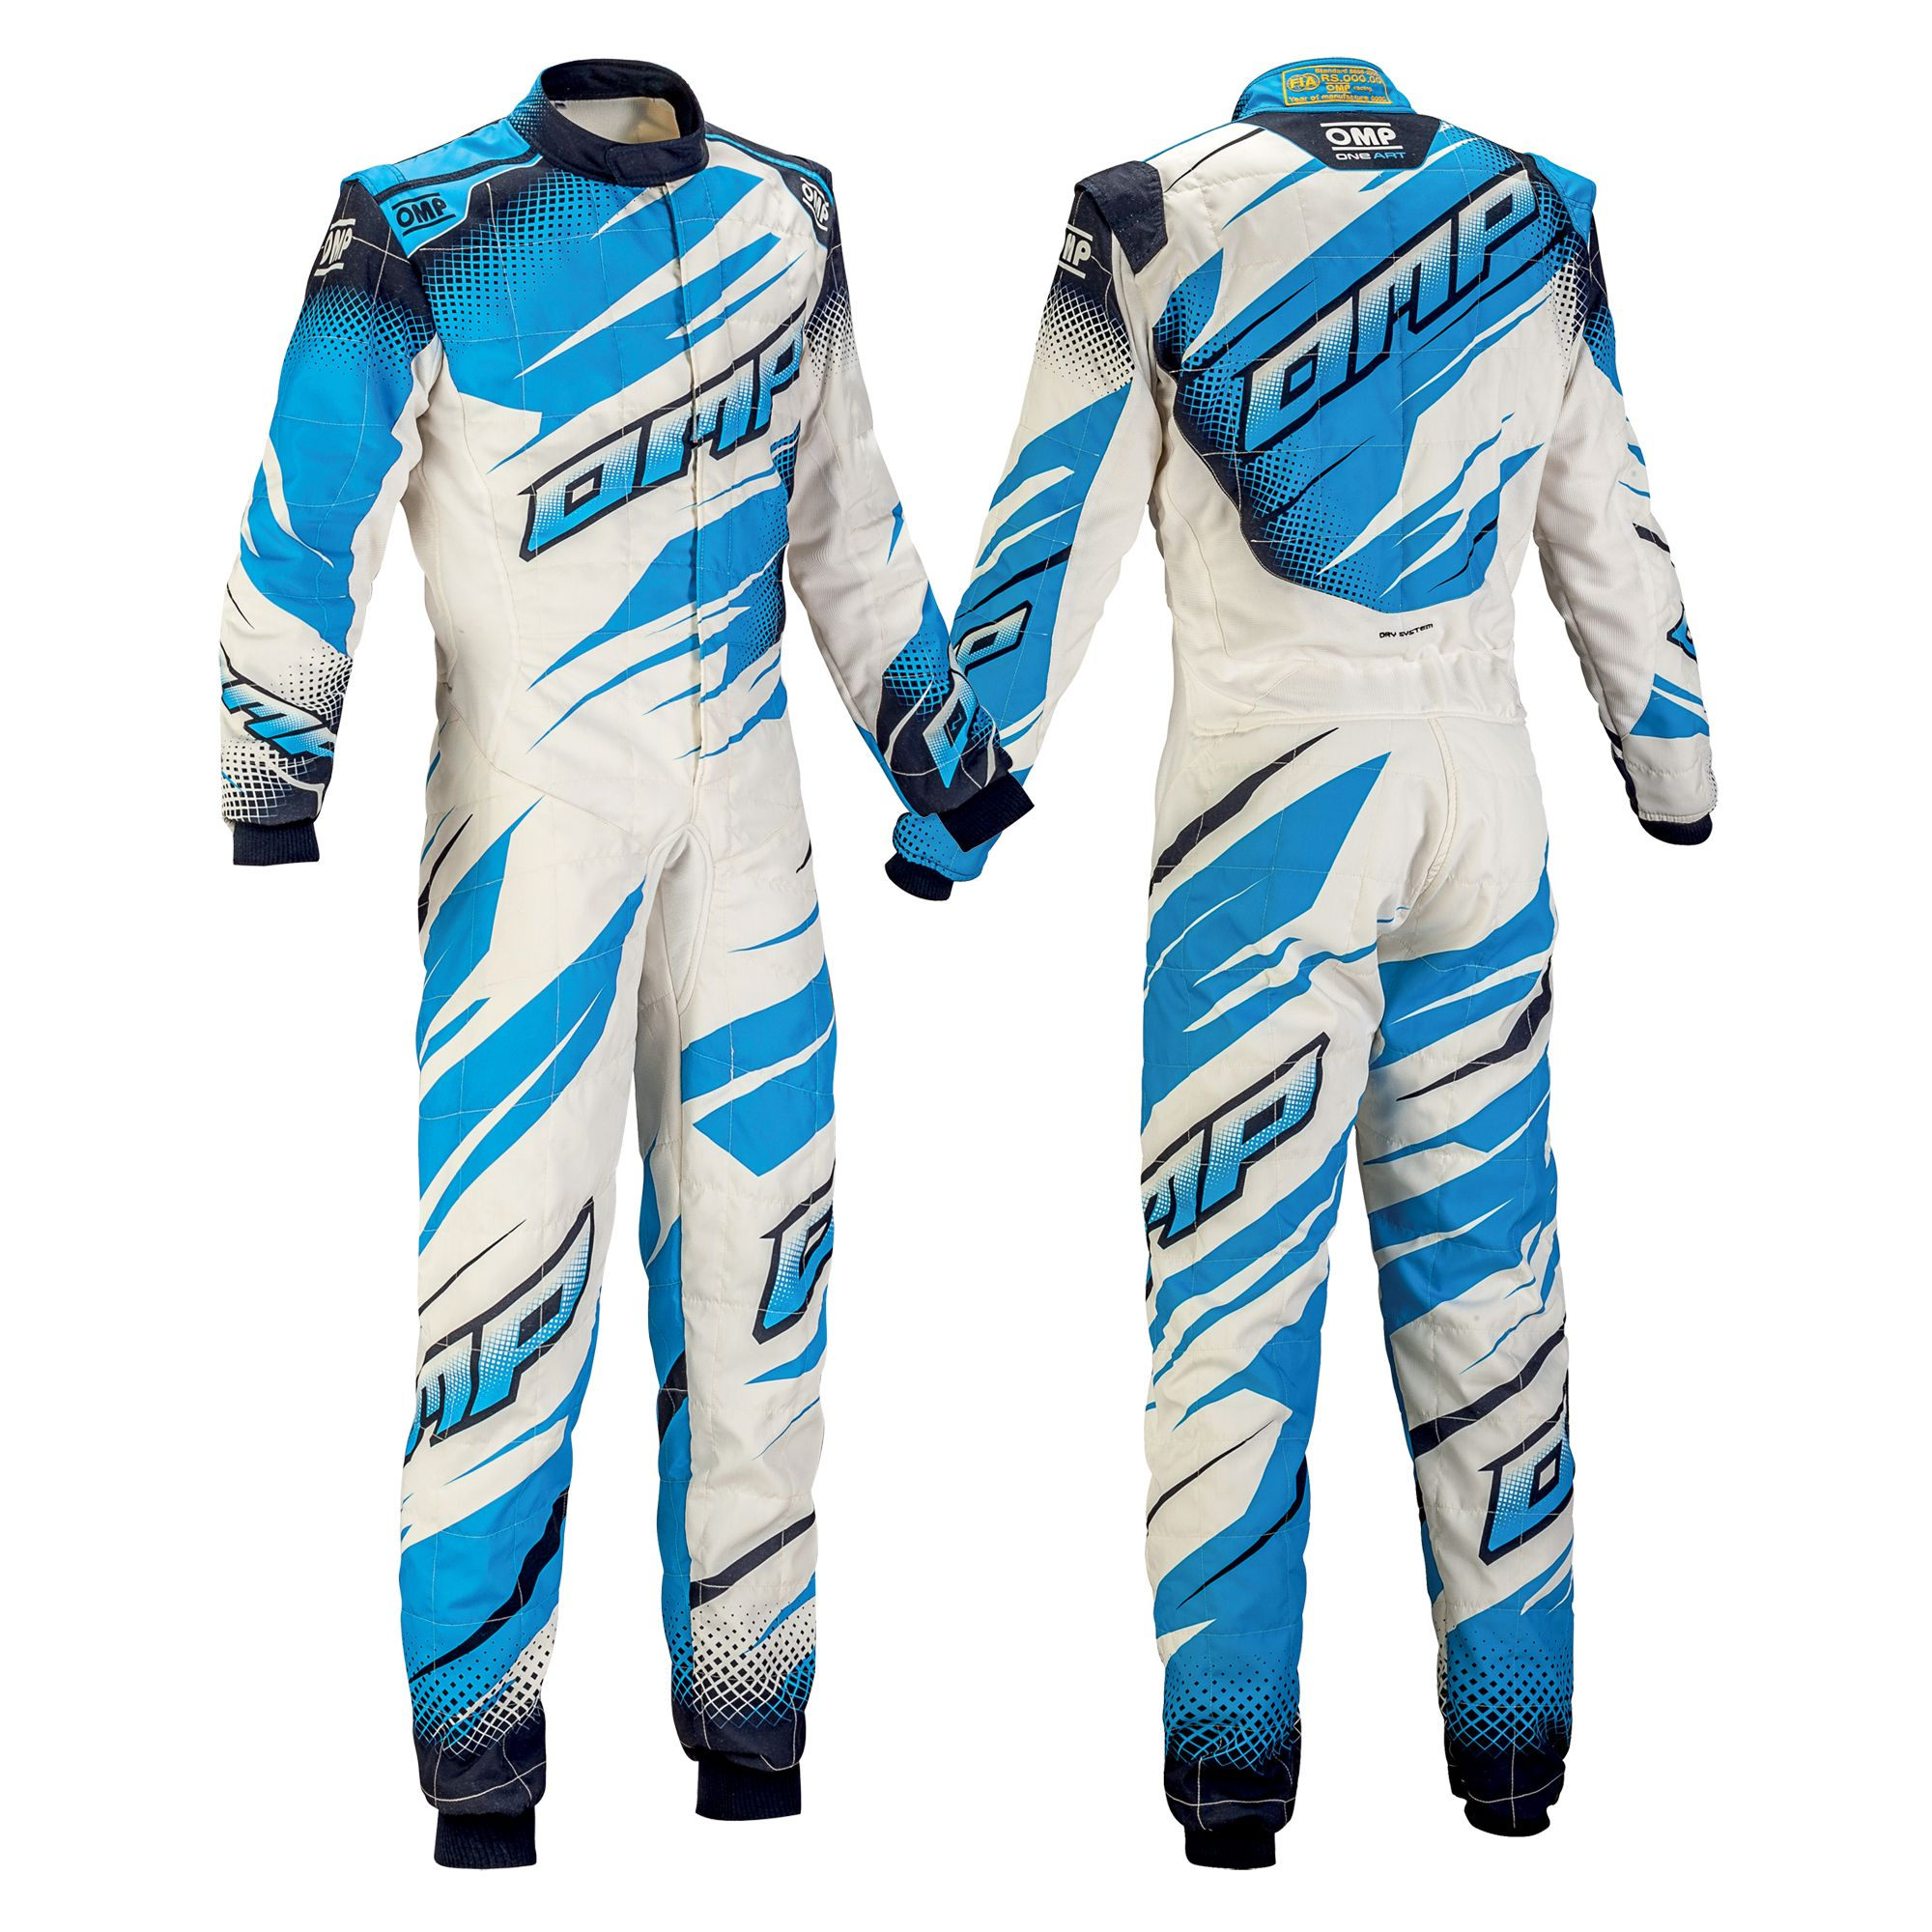 Omp One Art Race Suit White Navy Blue Cyan Clothes Design First Art Racing